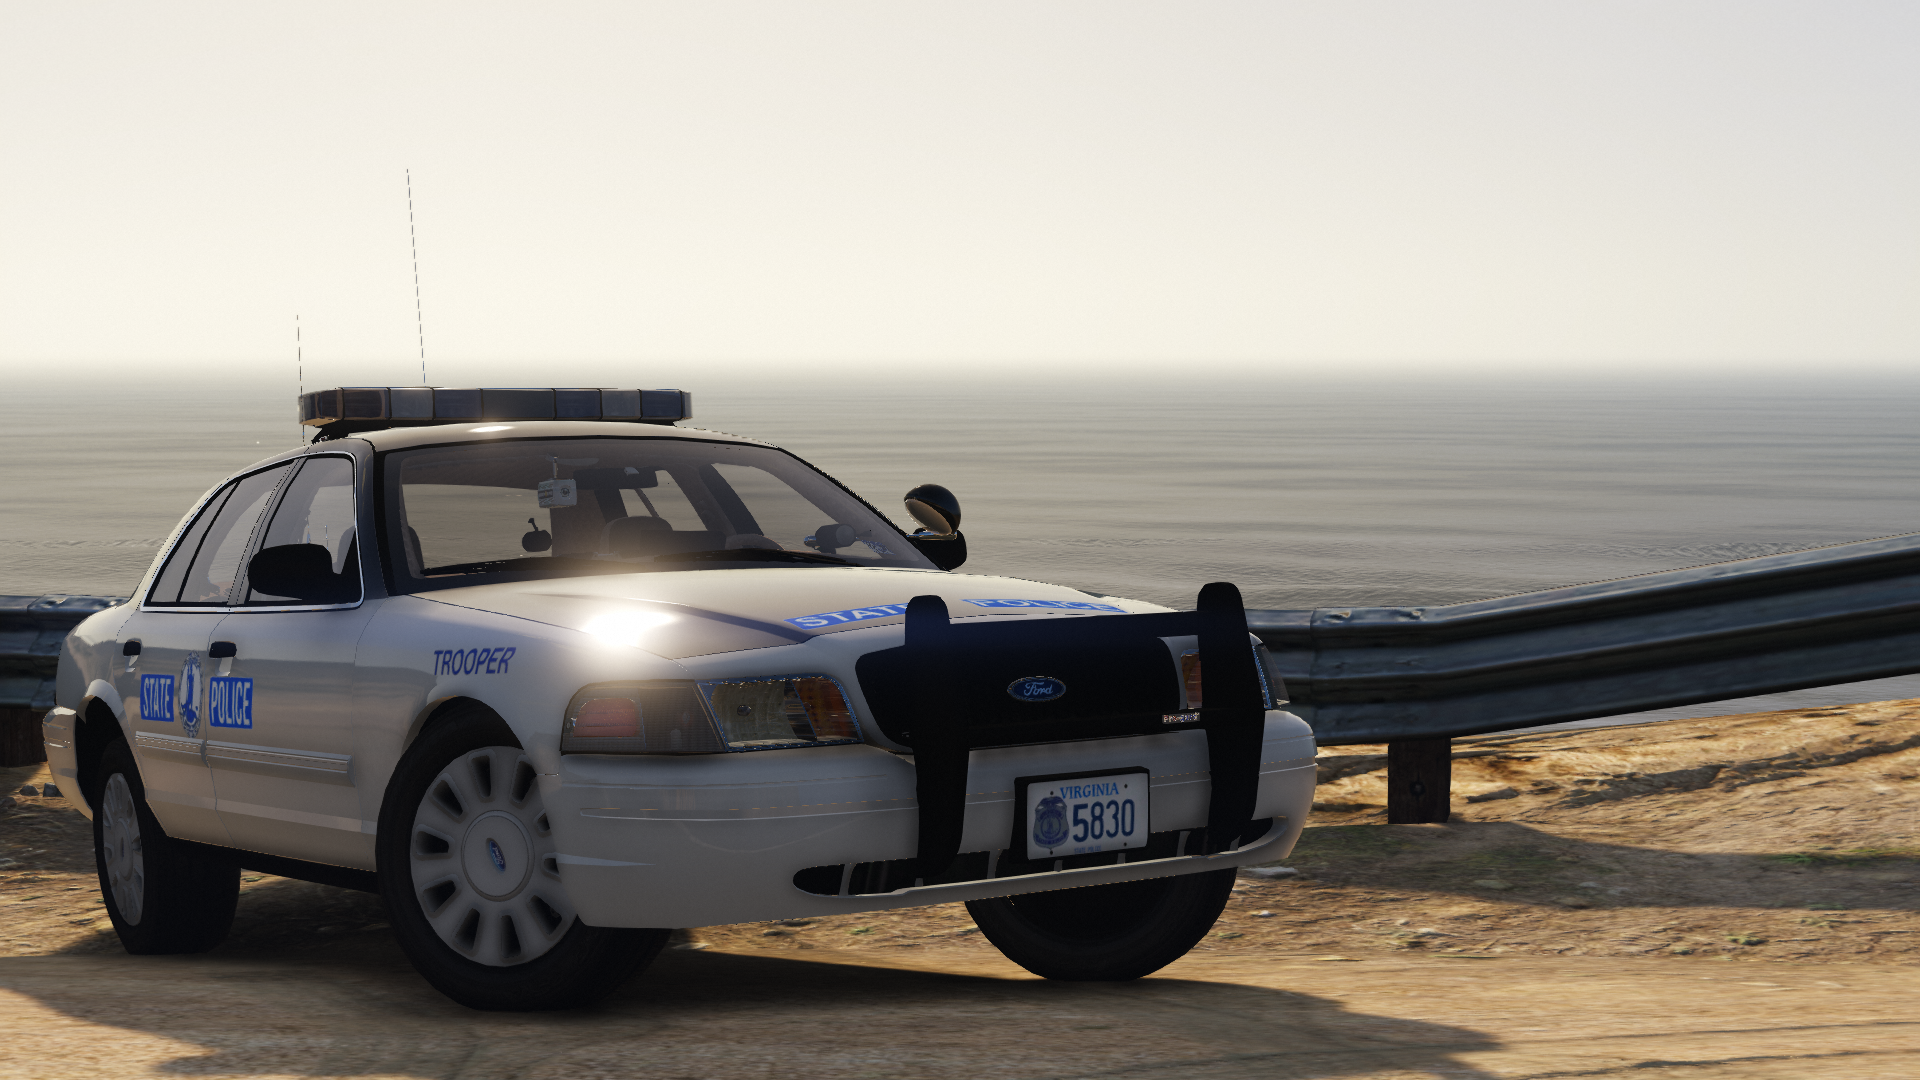 2009 Ford Crown Victoria P71- Virginia State Police